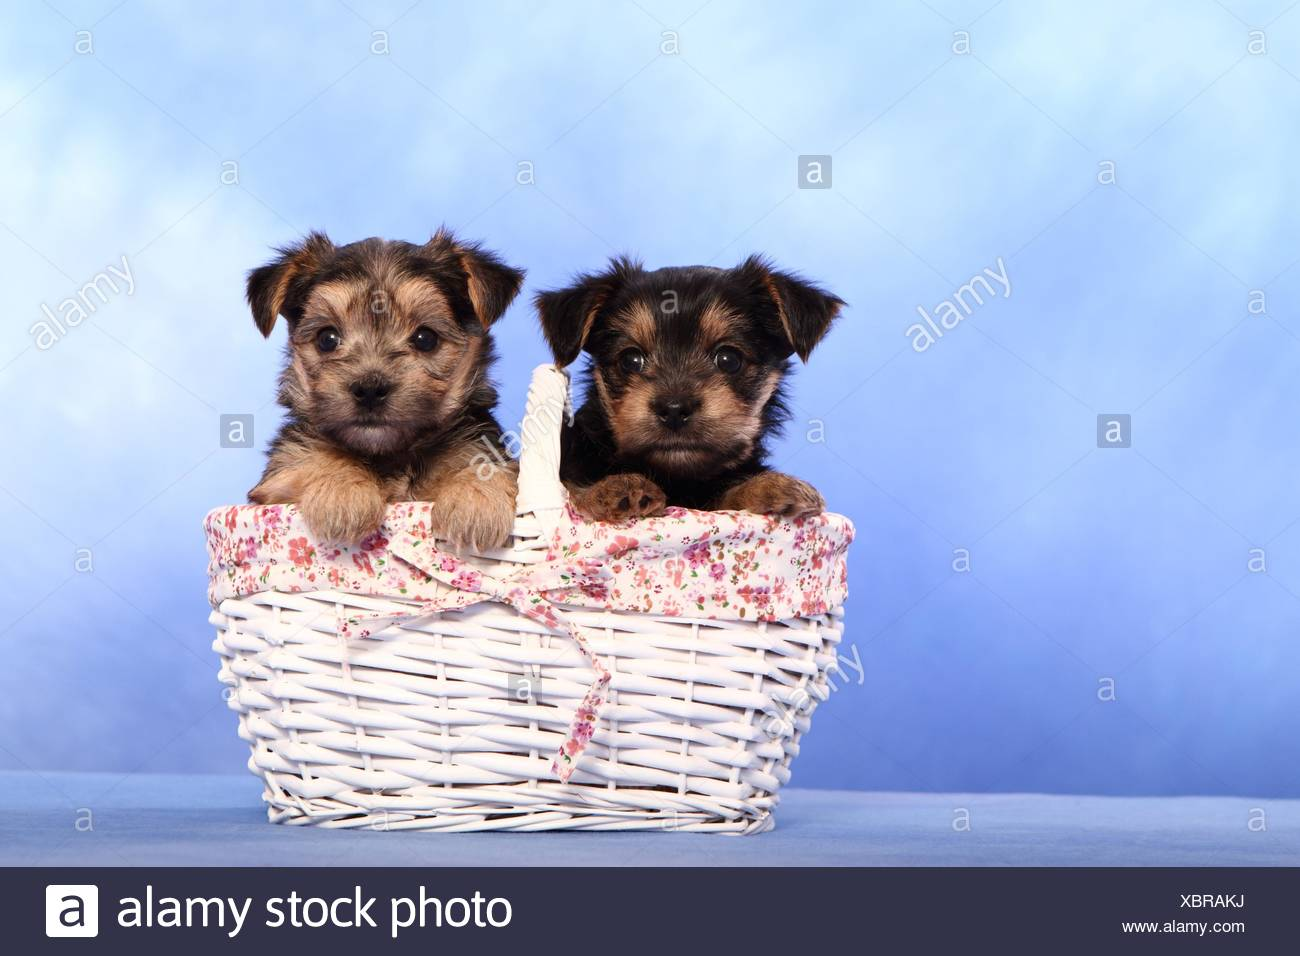 mongrel puppies - Stock Image